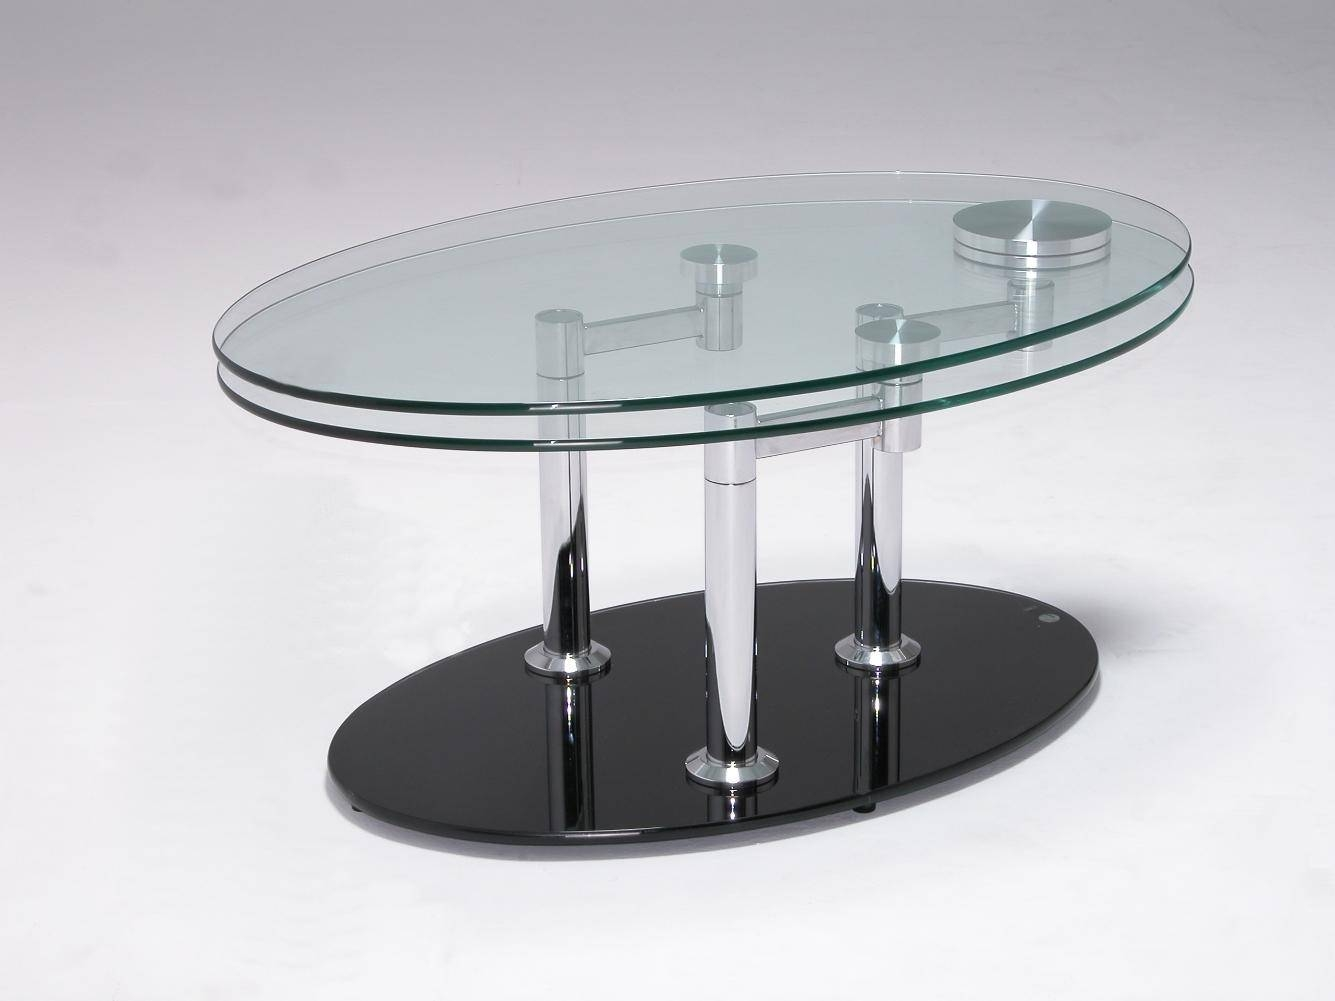 Glamorous Glass Coffee Table Design Charming Chrome Table Legs inside Oval Shaped Glass Coffee Tables (Image 17 of 30)